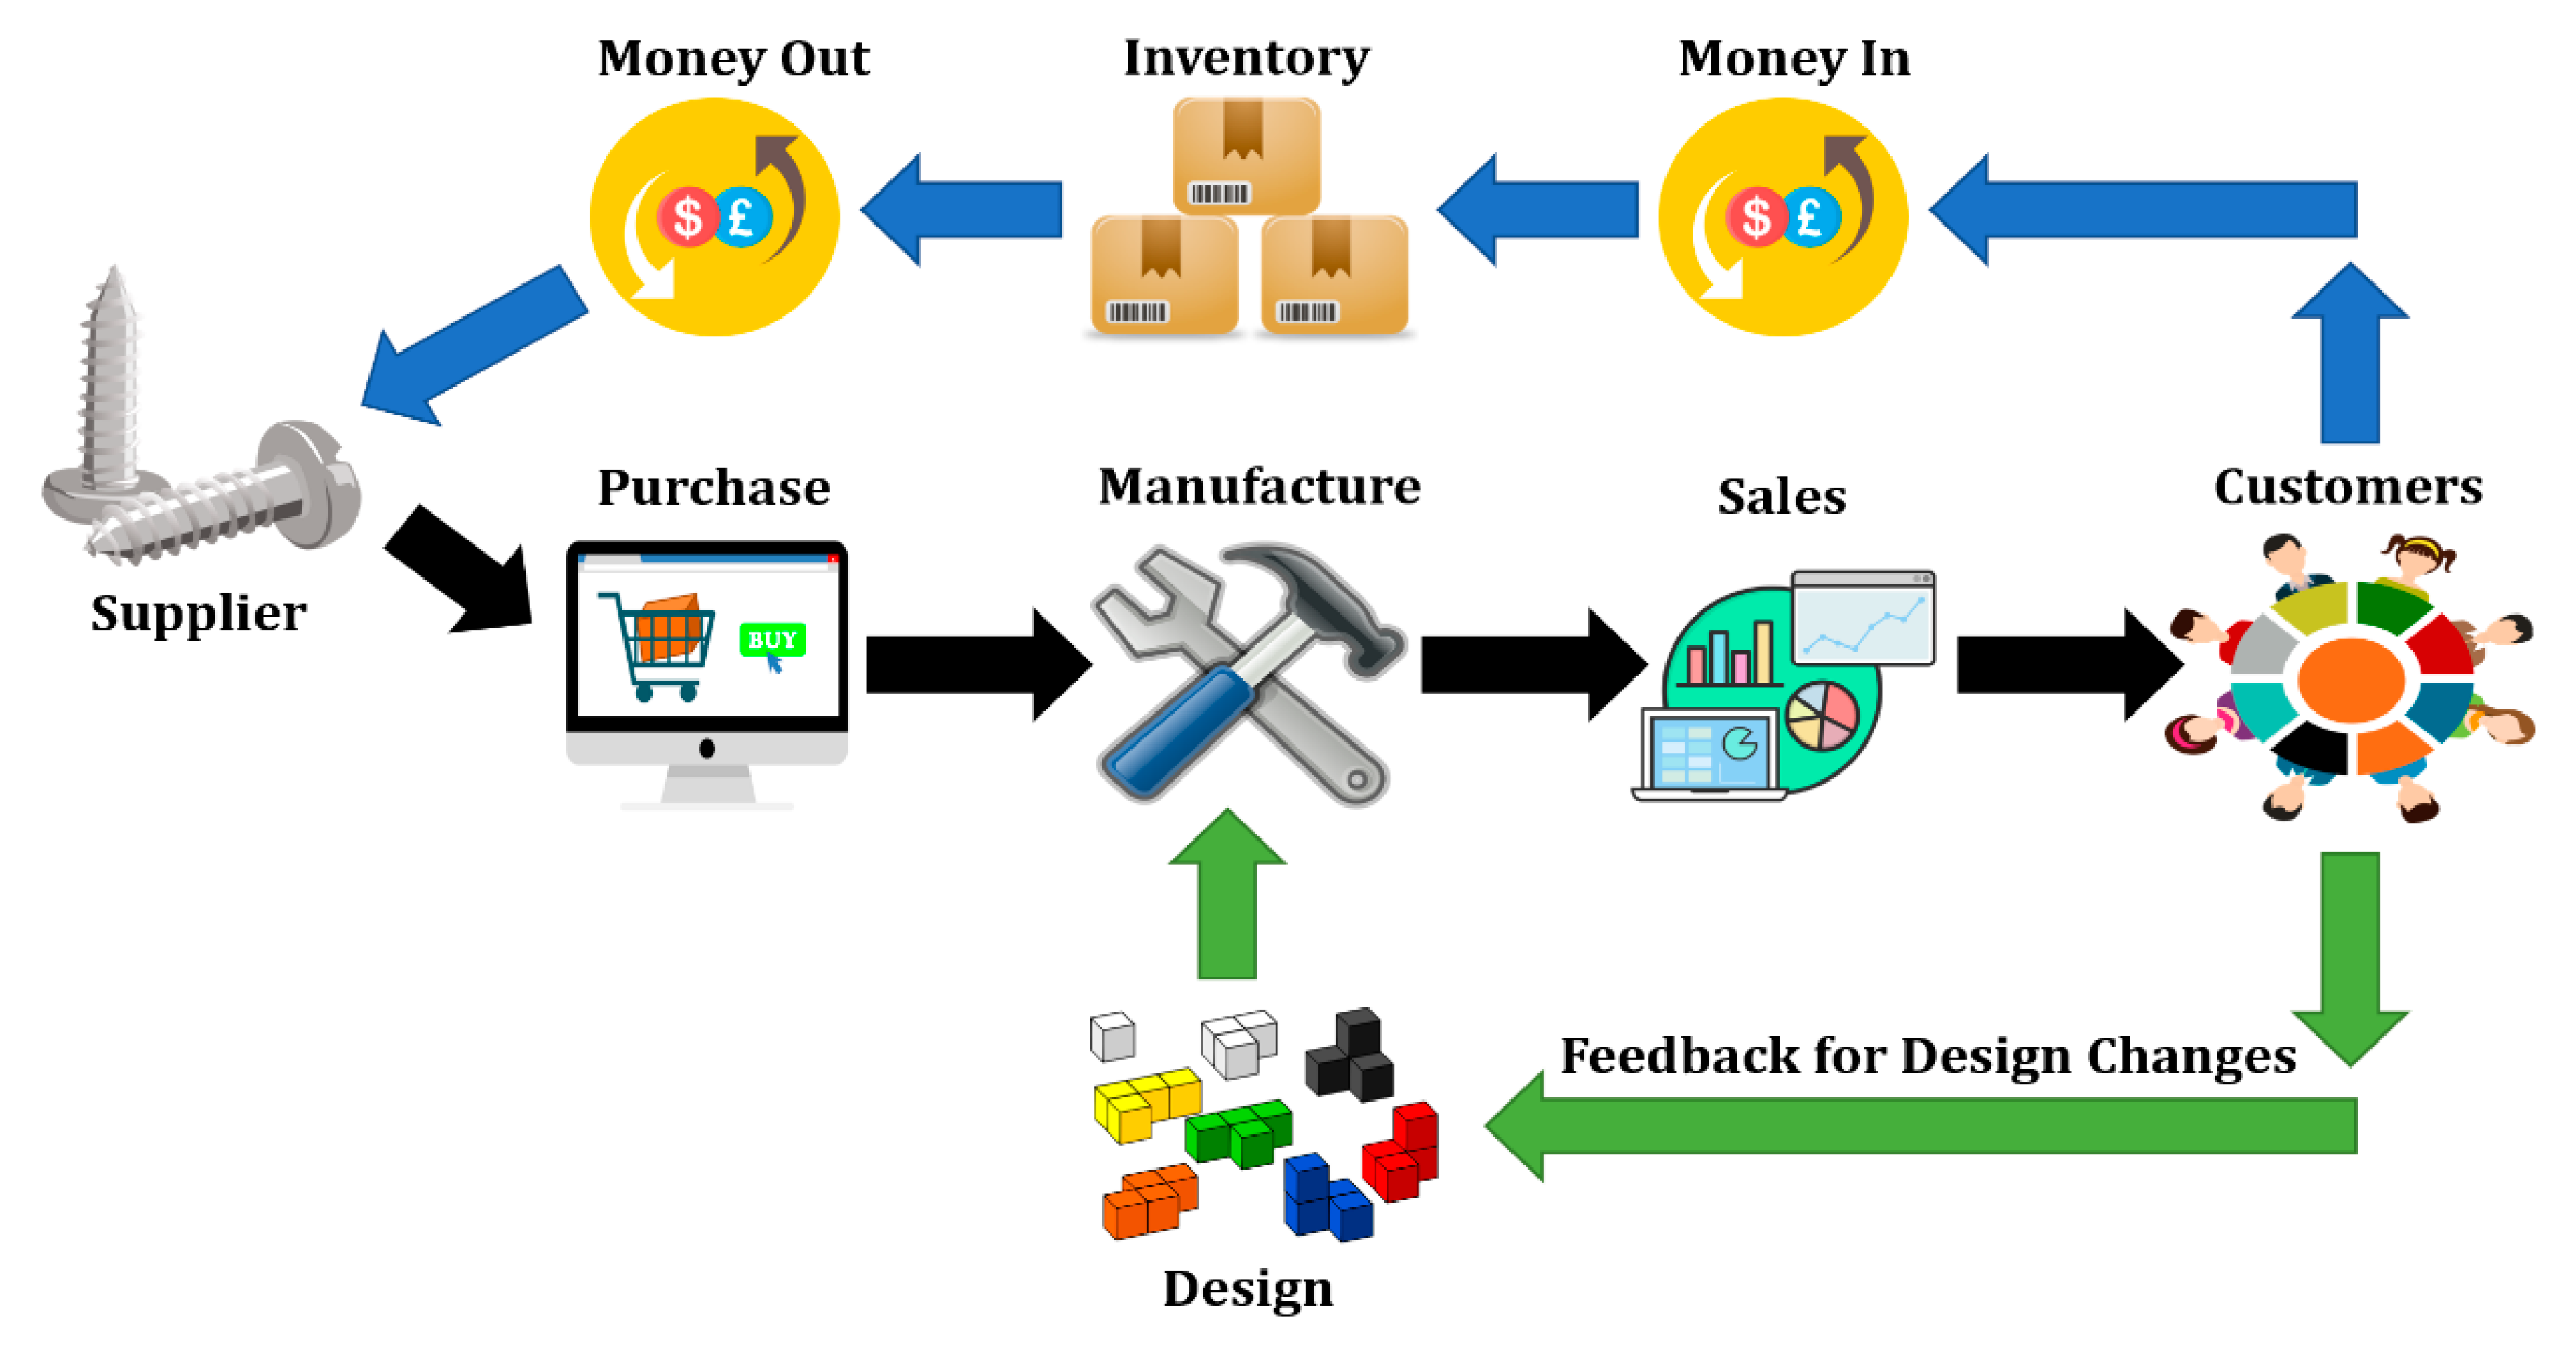 Designs Free Full Text A Conceptual Framework To Support Digital Transformation In Manufacturing Using An Integrated Business Process Management Approach Html